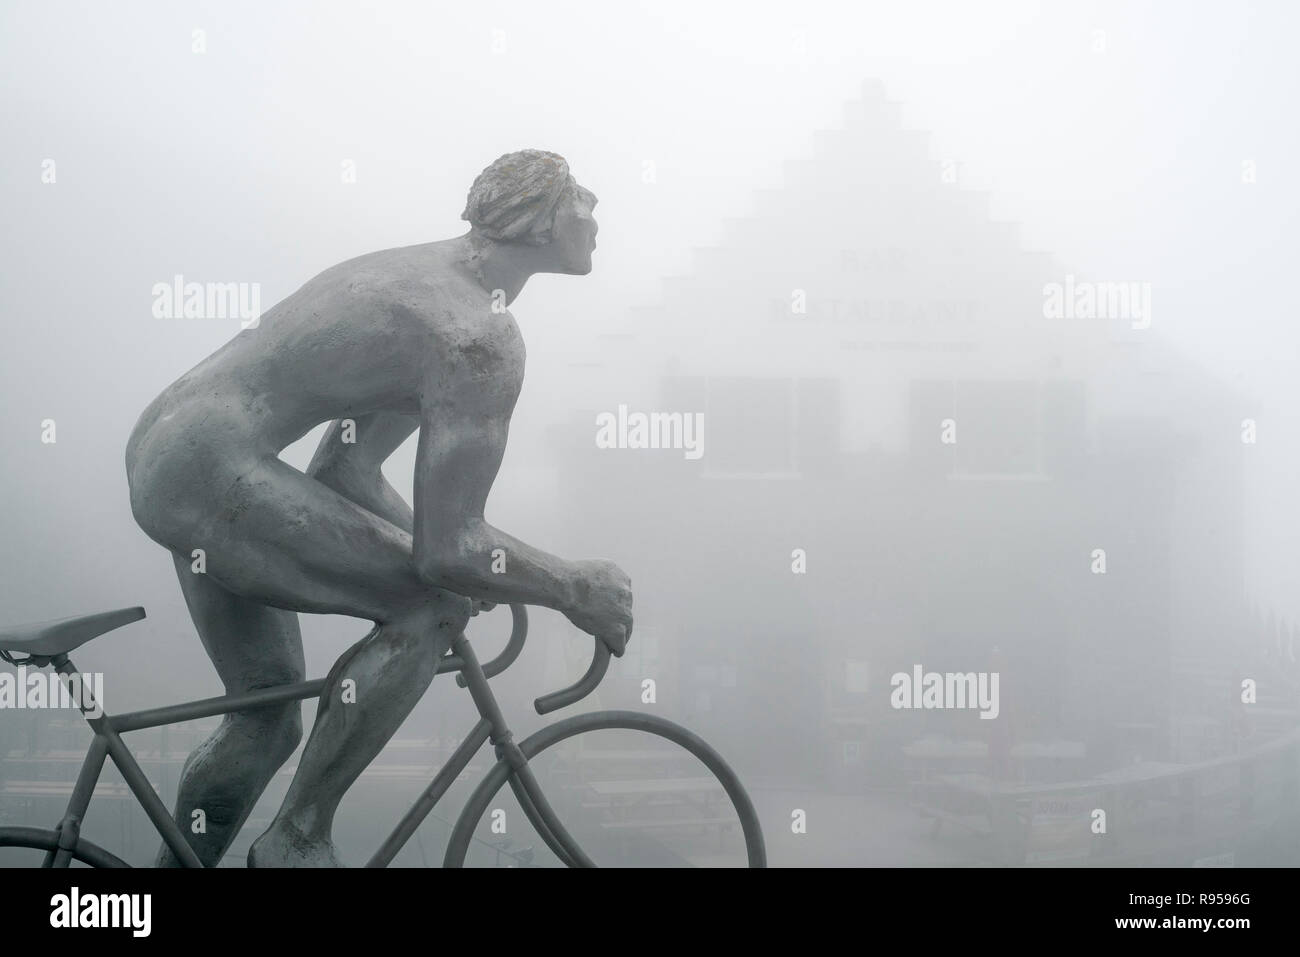 Restaurant / bar and statue for Tour de France cyclist Octave Lapize at the Col du Tourmalet in thick mist in the Pyrenees, France Stock Photo